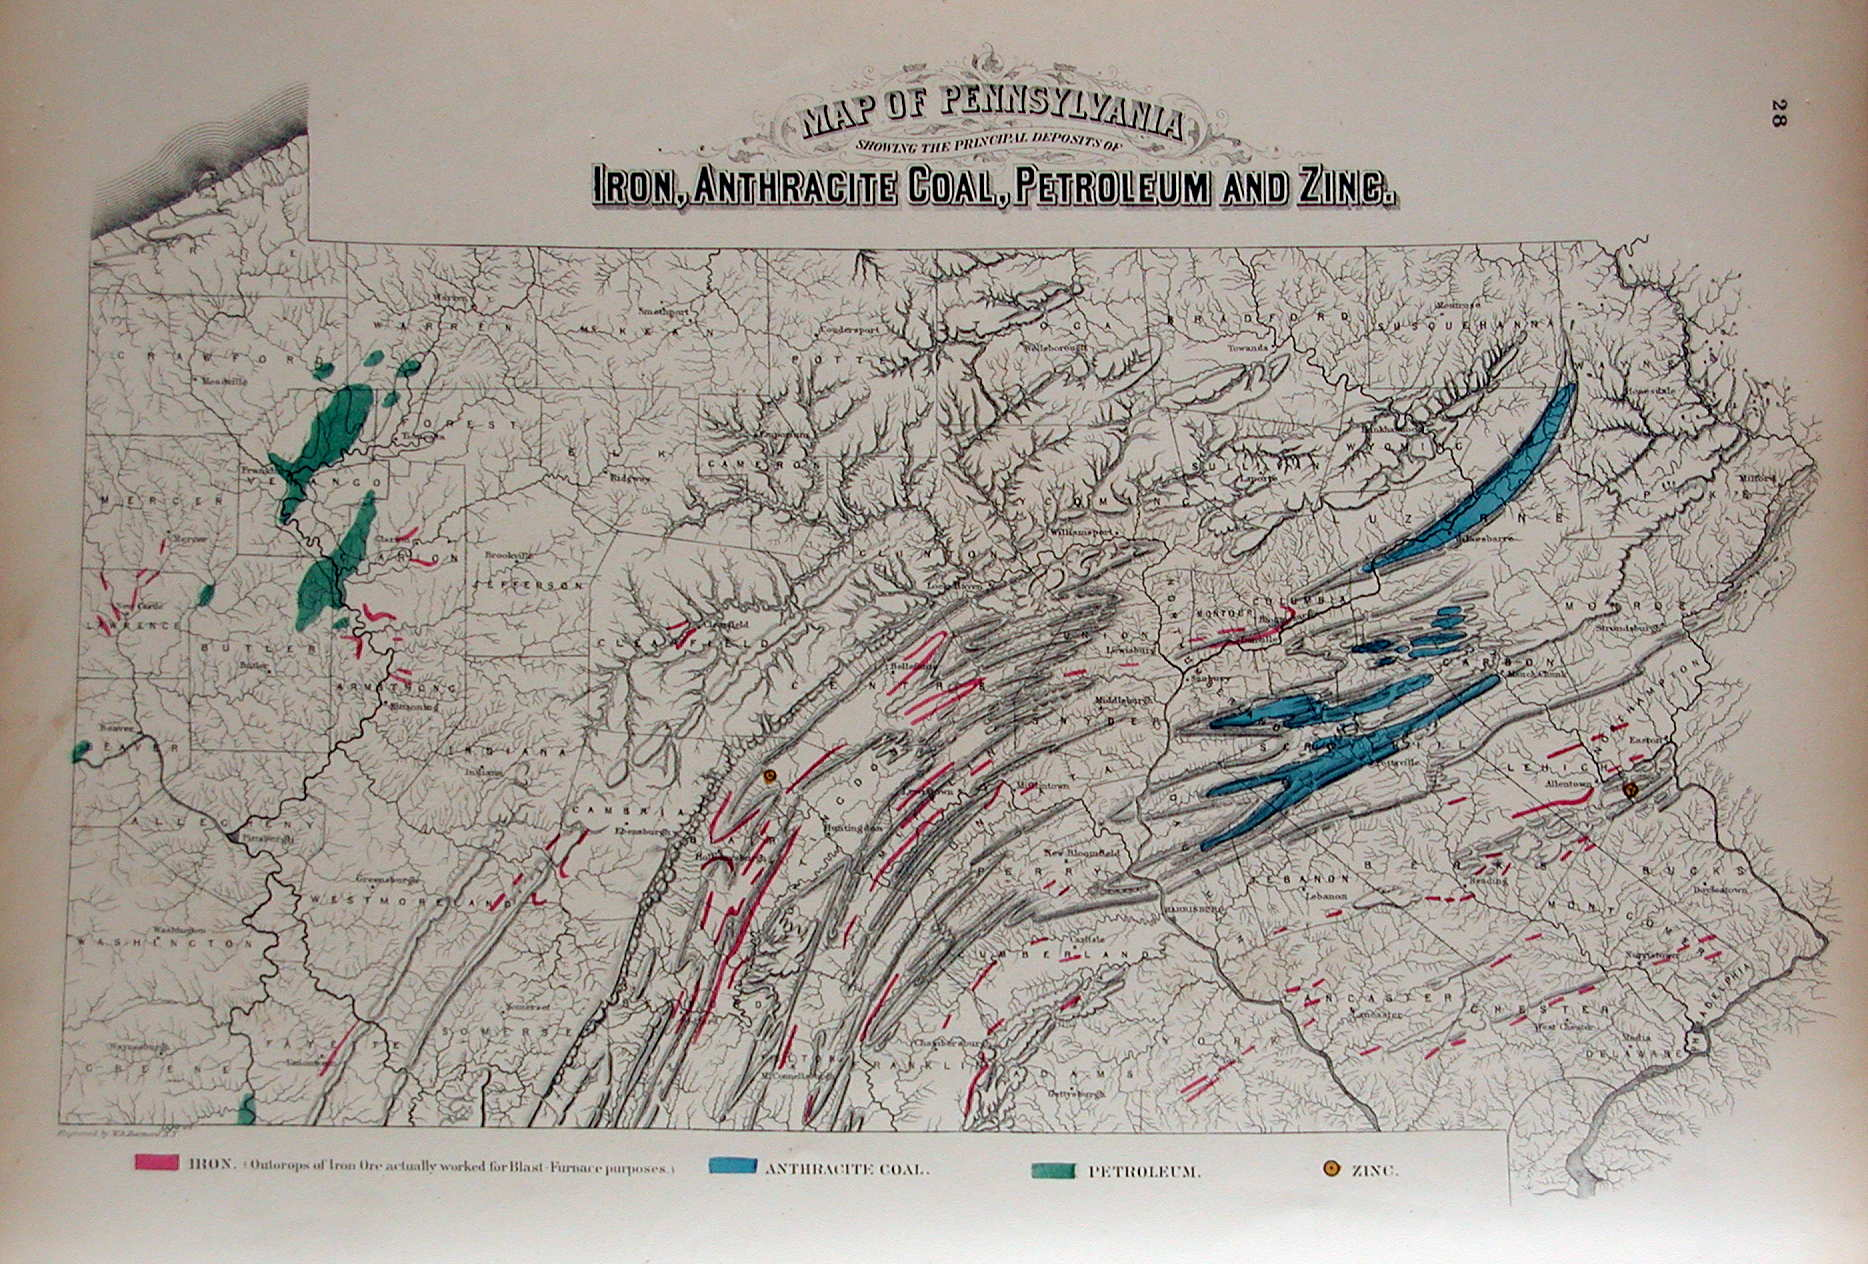 An Overview Of Pennsylvania Mapping Circa To - Us iron ore deposits map